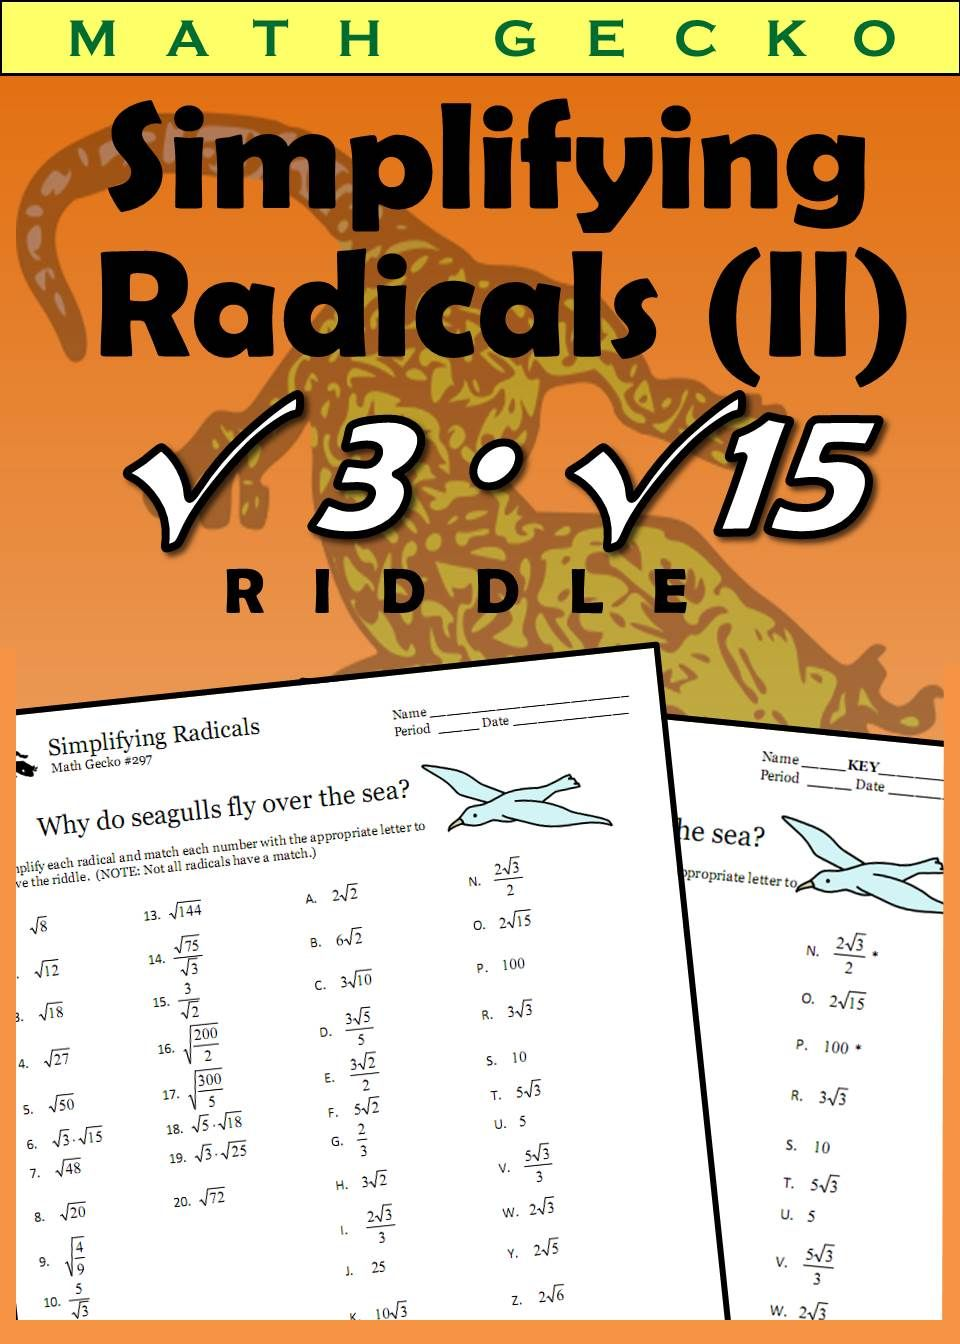 Simplifying Radicals Ii Riddle Simplifying Radicals Subtraction Facts Worksheet Math Fractions Worksheets Simplifying radical expressions adding